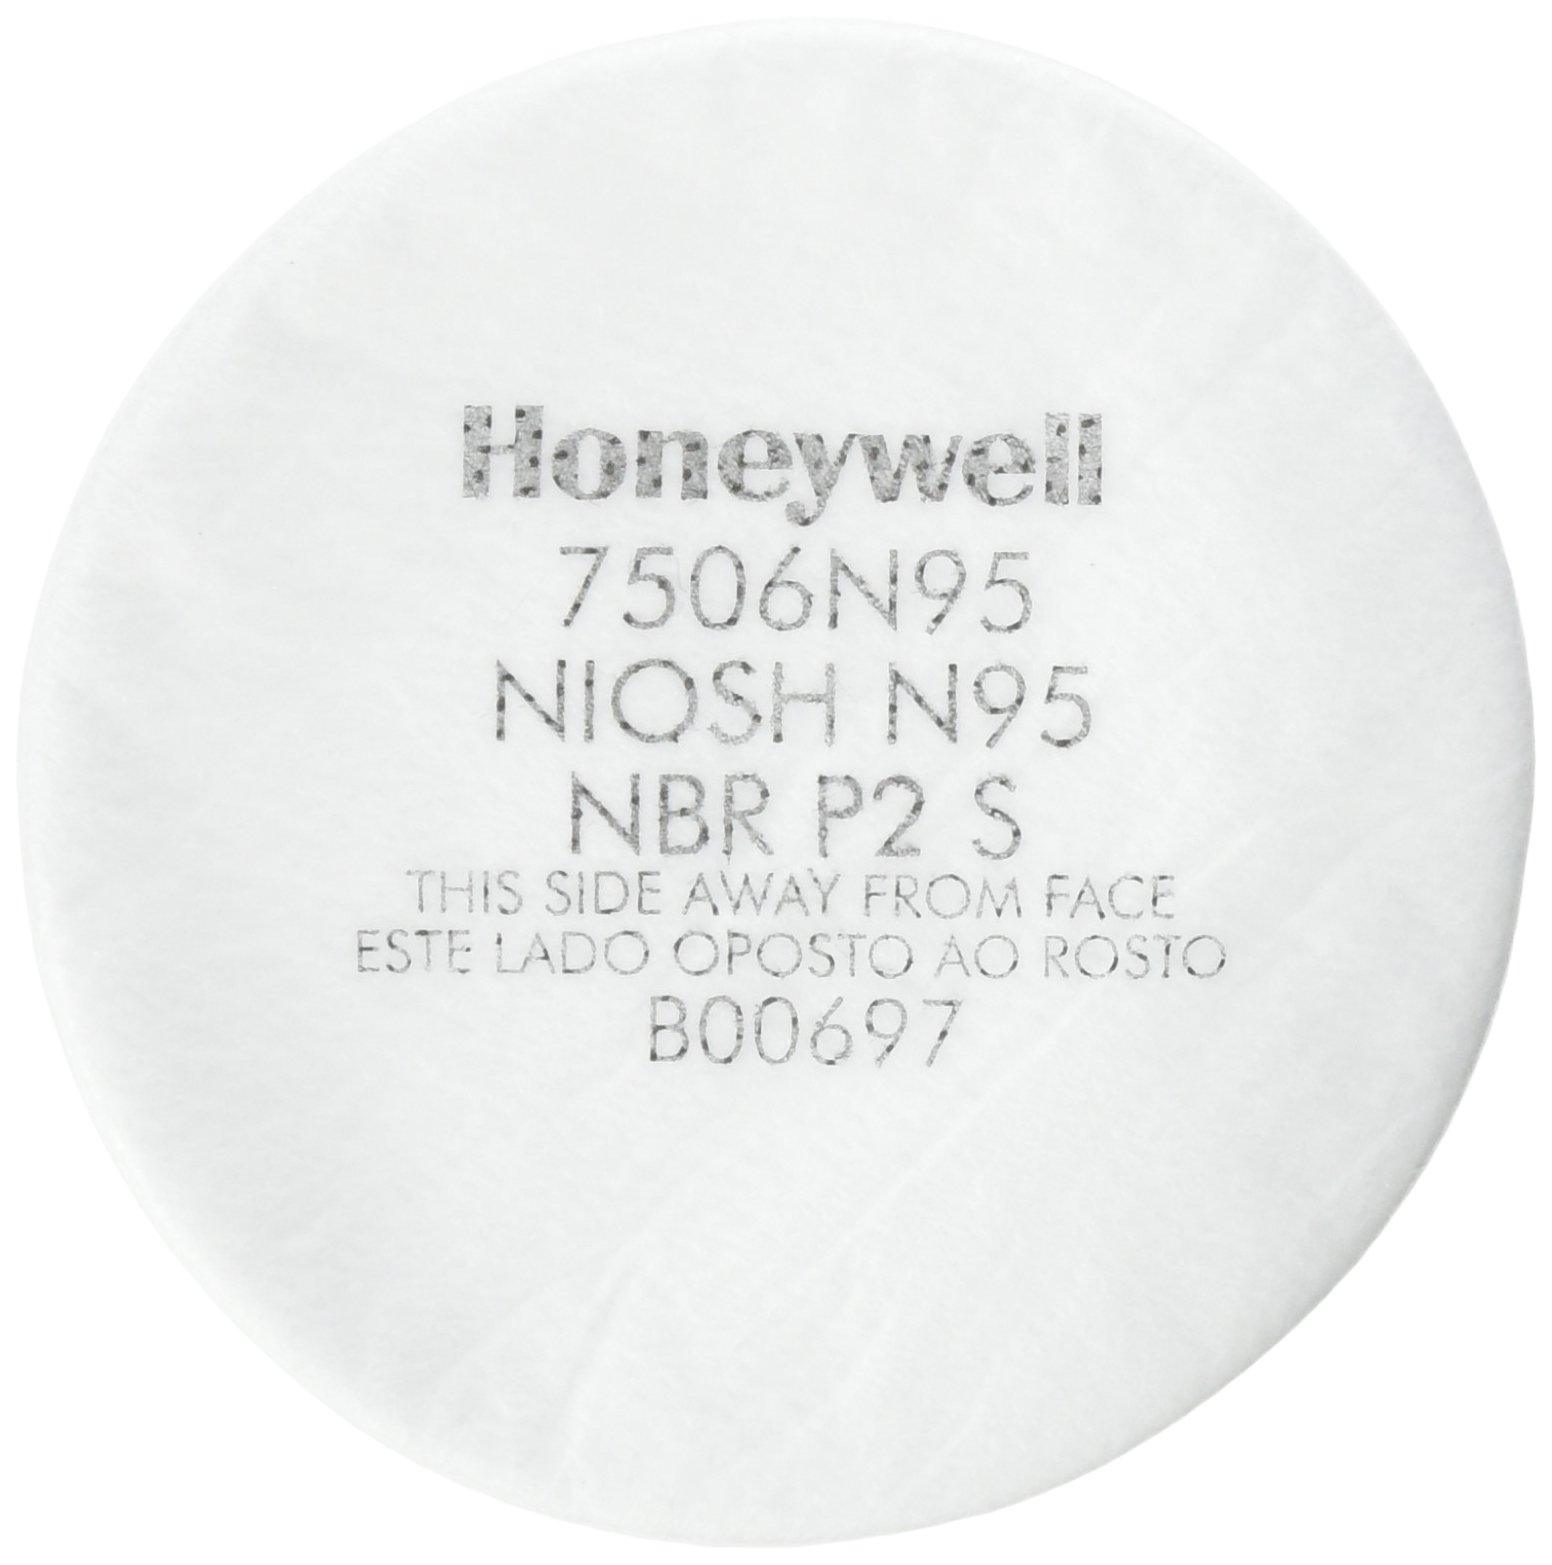 HONEYWELL 7506N95 Respiratory Protection Filter - North N95 NIOSH Prefilter {10 Pack}